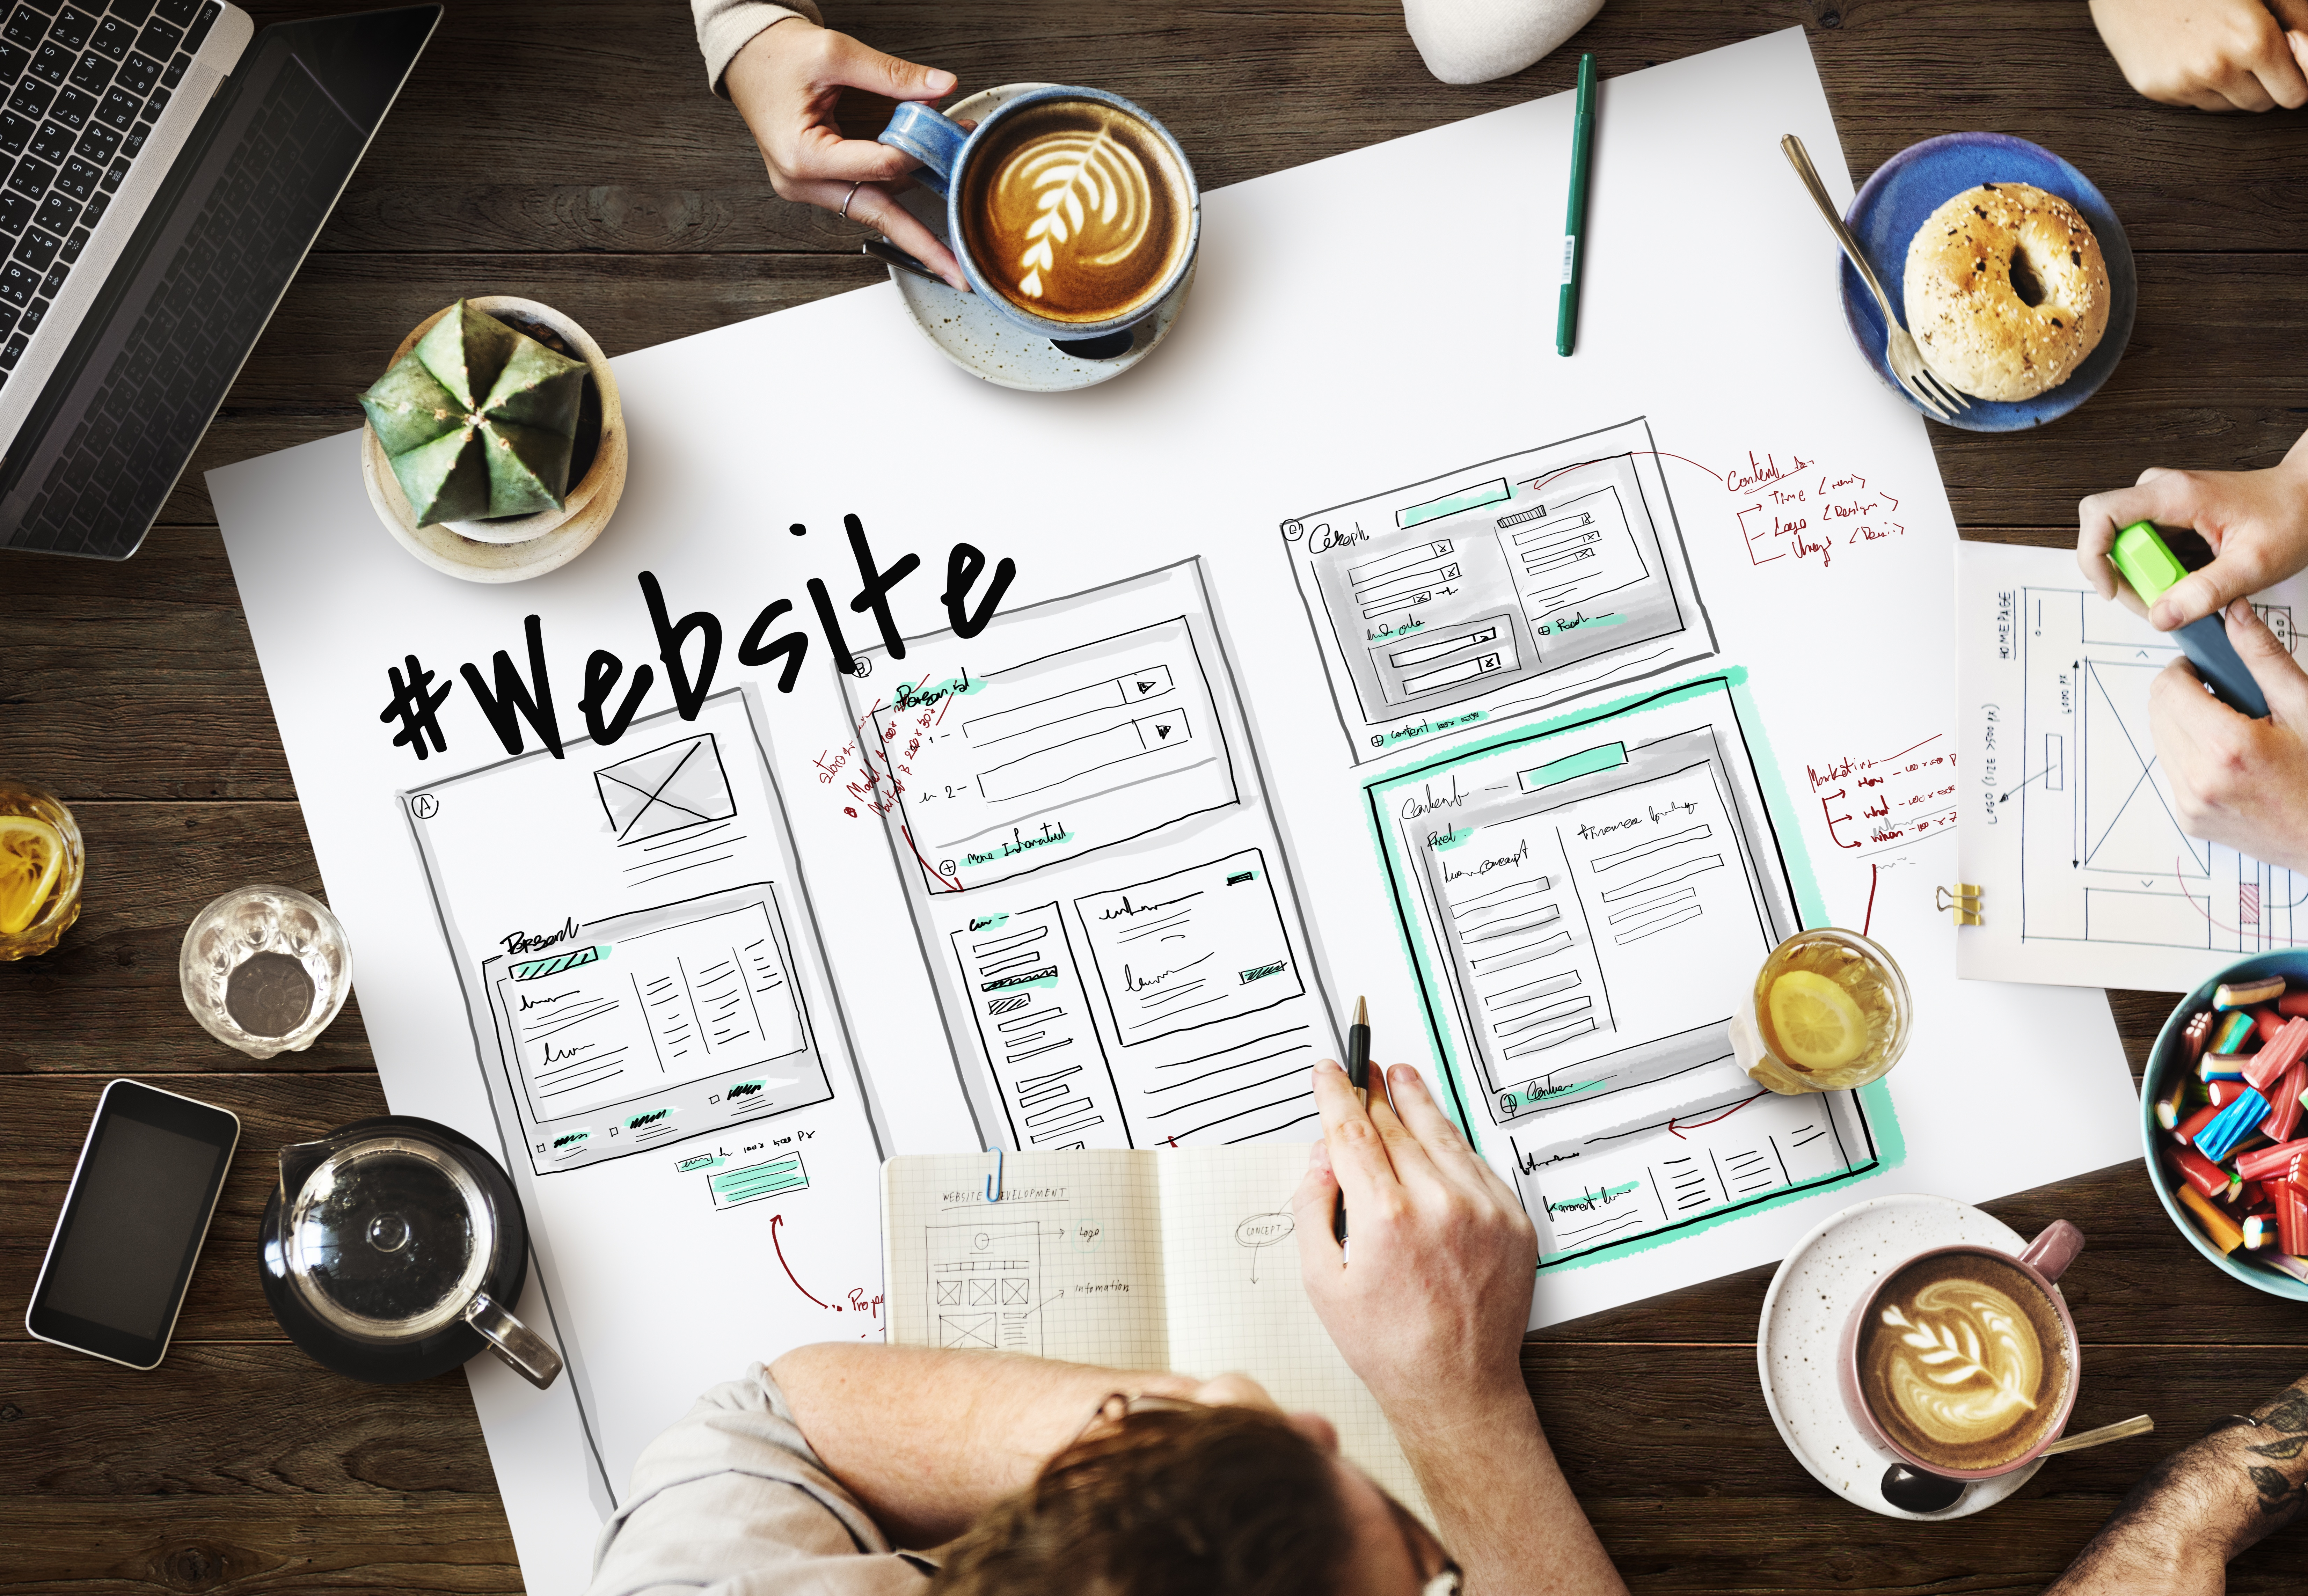 What's Keeping Your Website From Being Great?